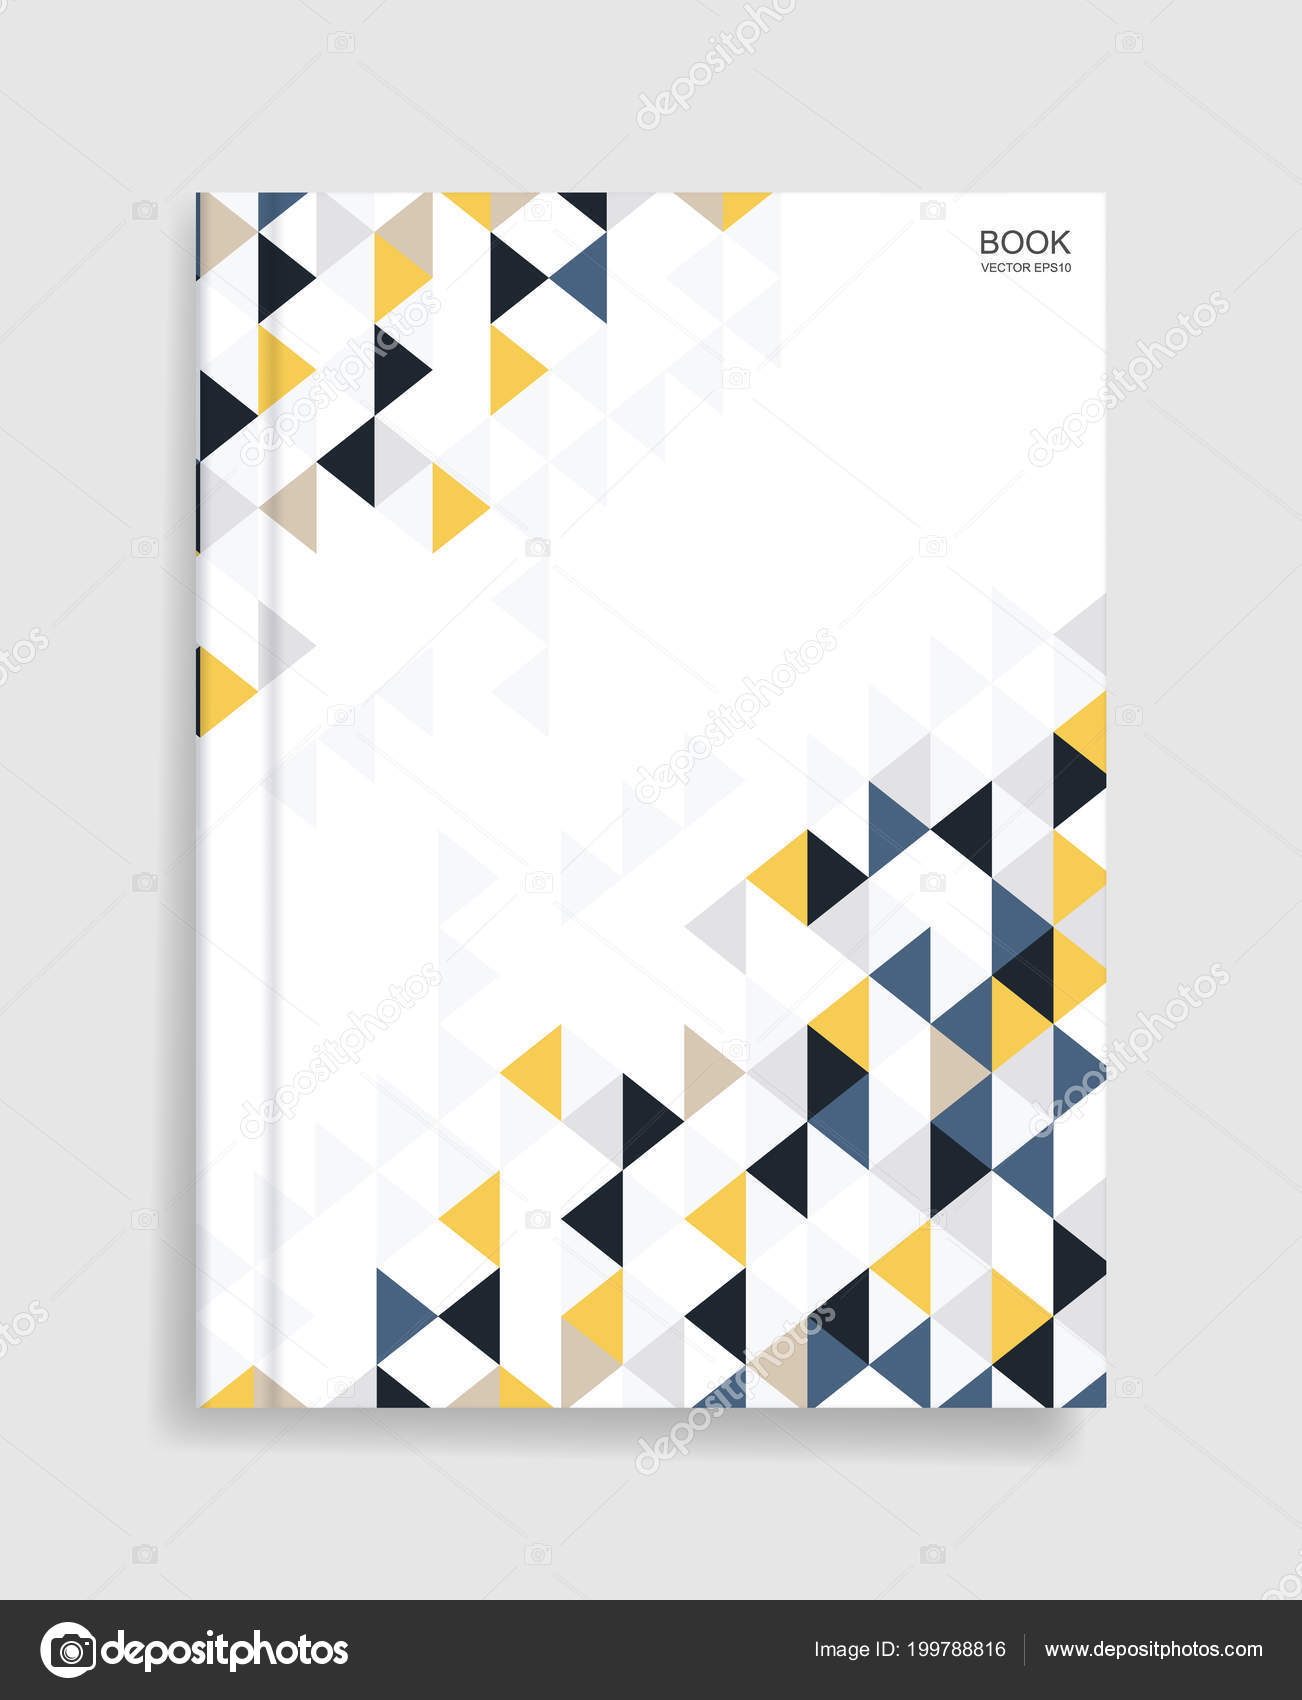 magazine book template background cover geometric pattern background